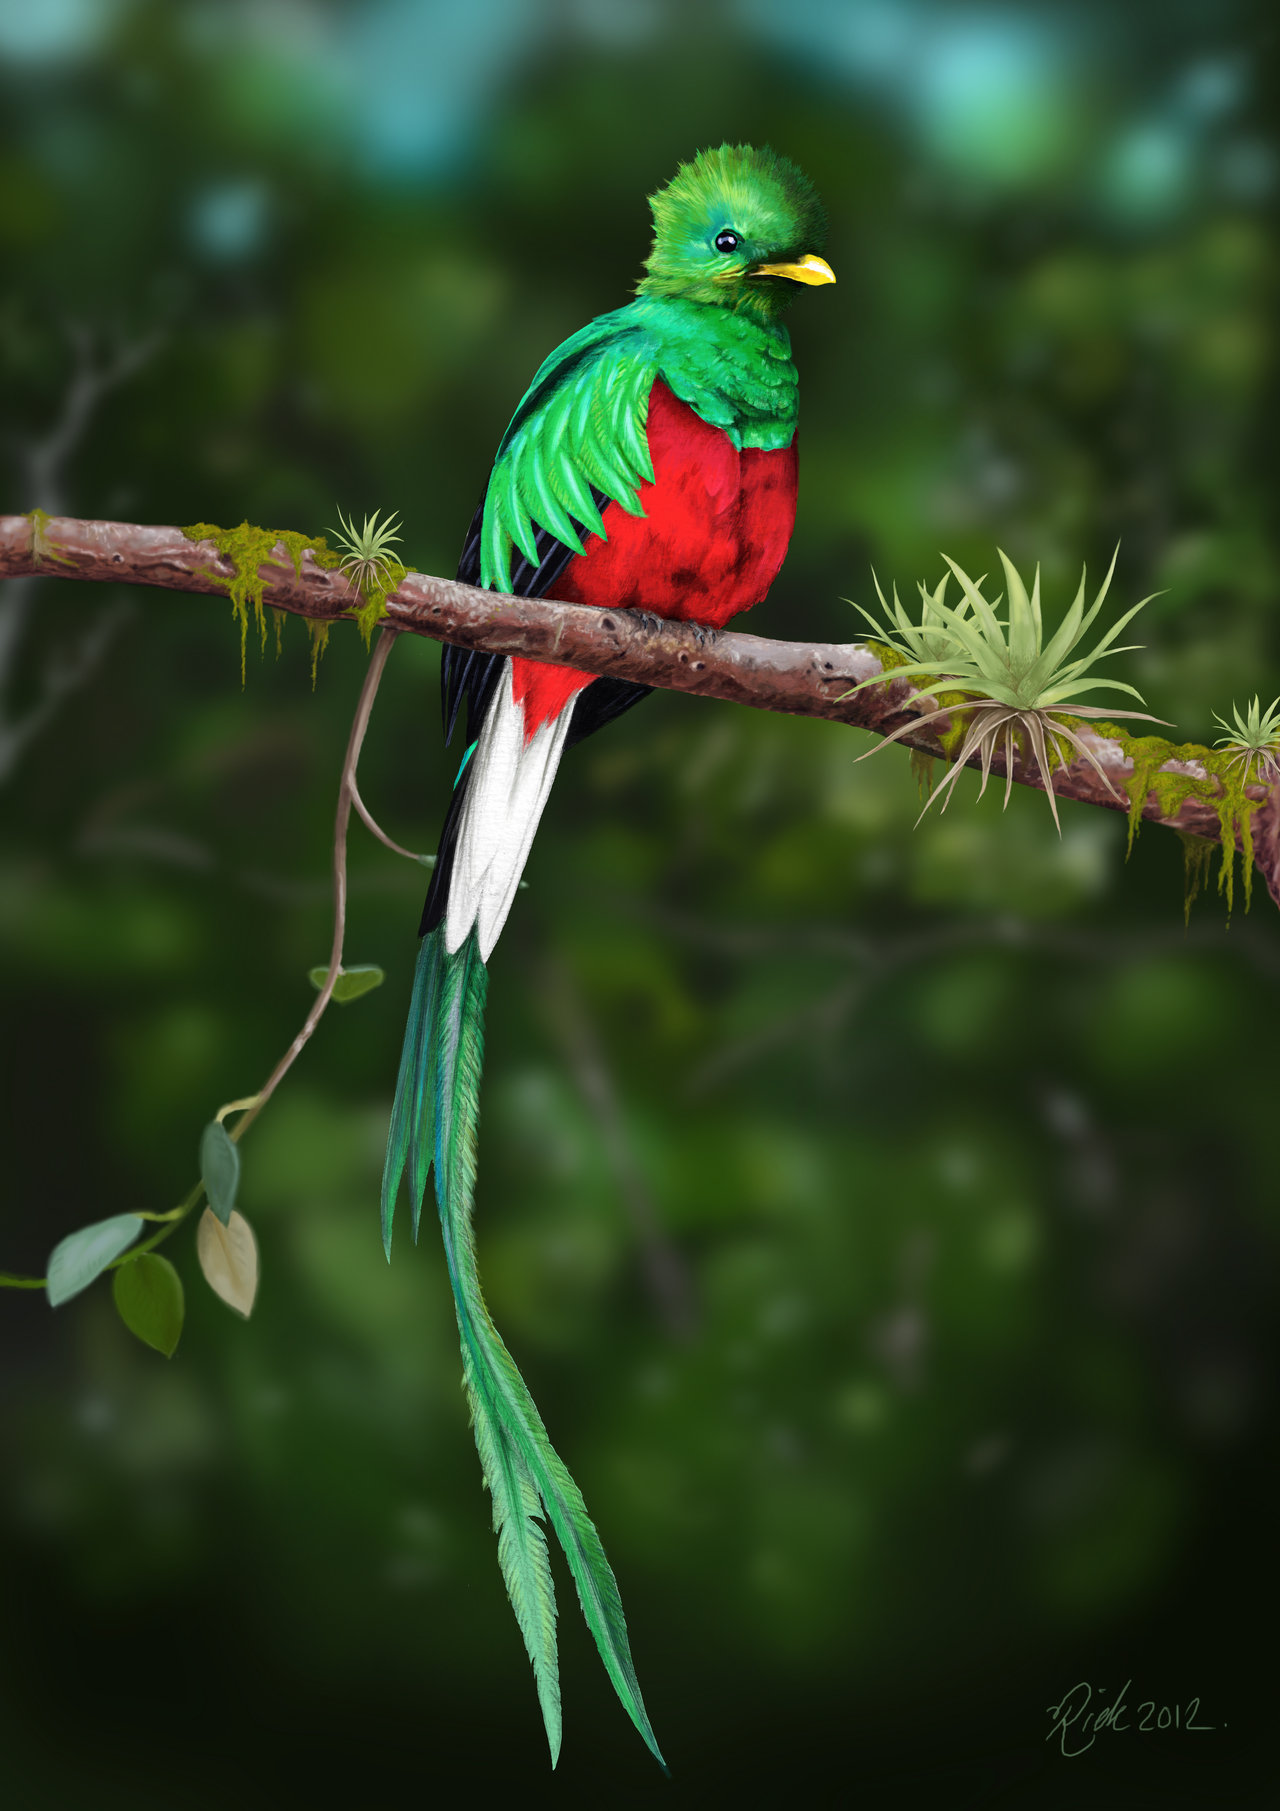 wpid-quetzal-bird-hd-wallpaper-animals-images-quetzal-bird-hd-wallpaper